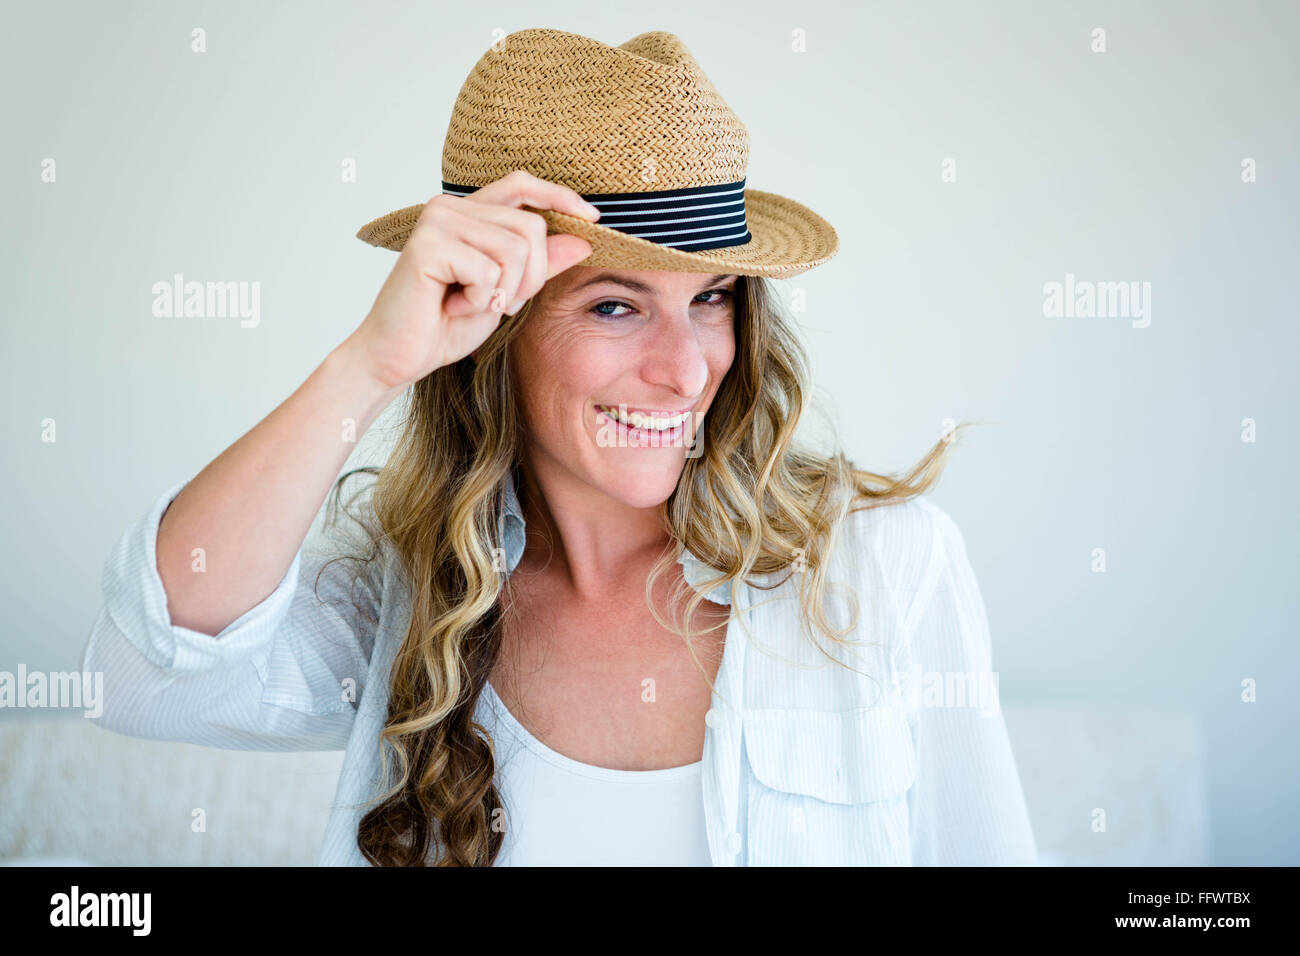 68a4cc3a8eb94 woman wearing a straw fedora smiling and looking away - Stock Image